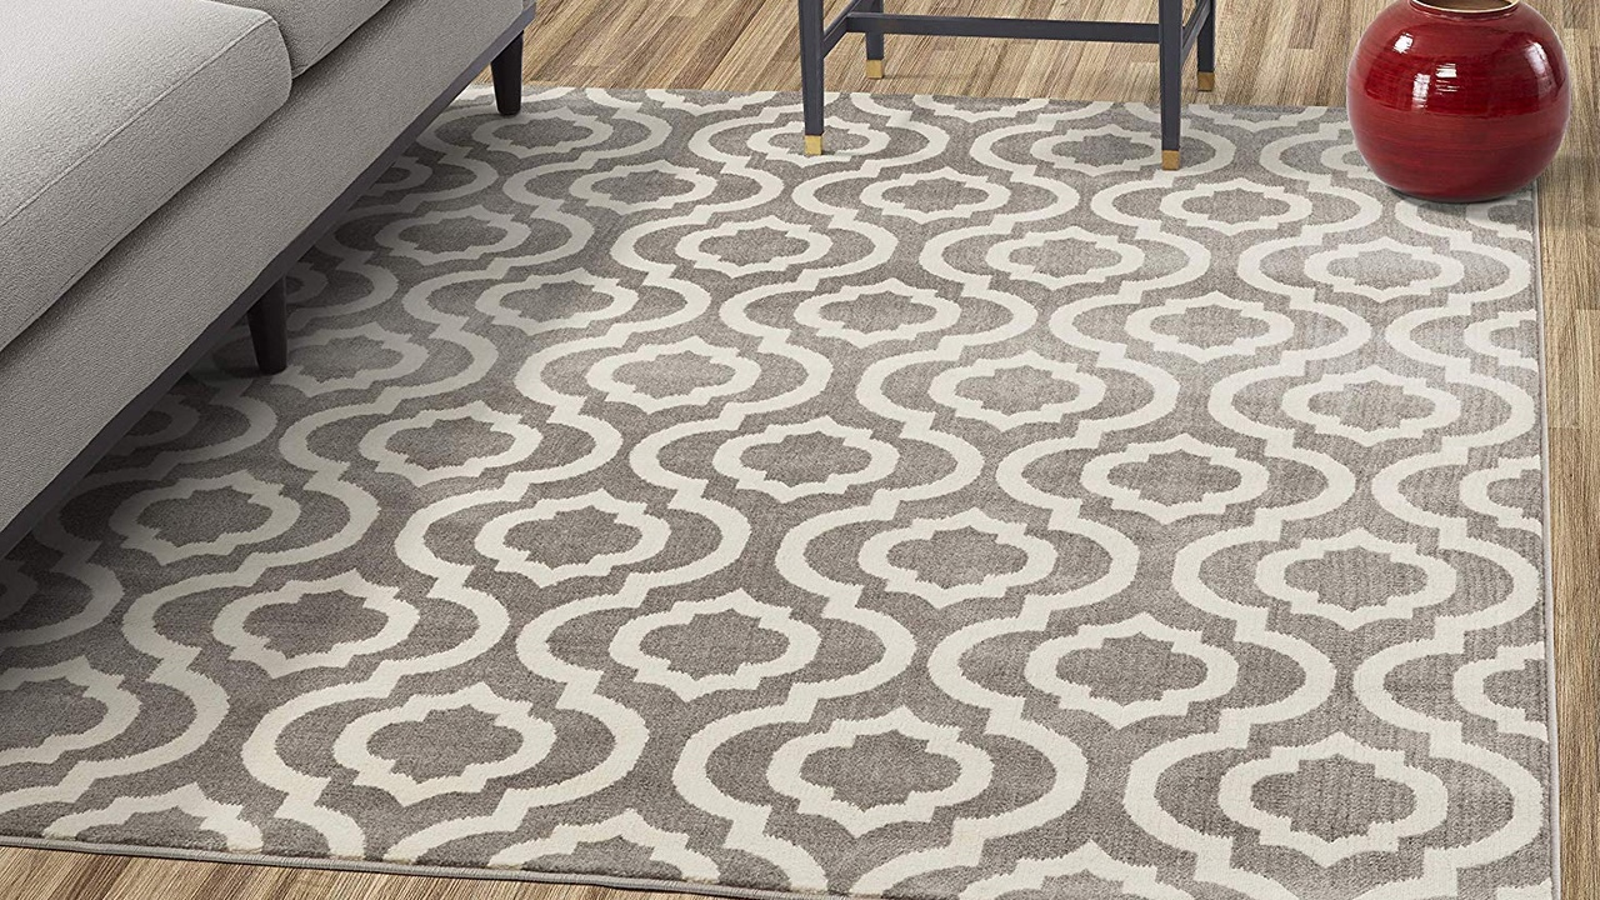 Amazon rugs, $18 and up